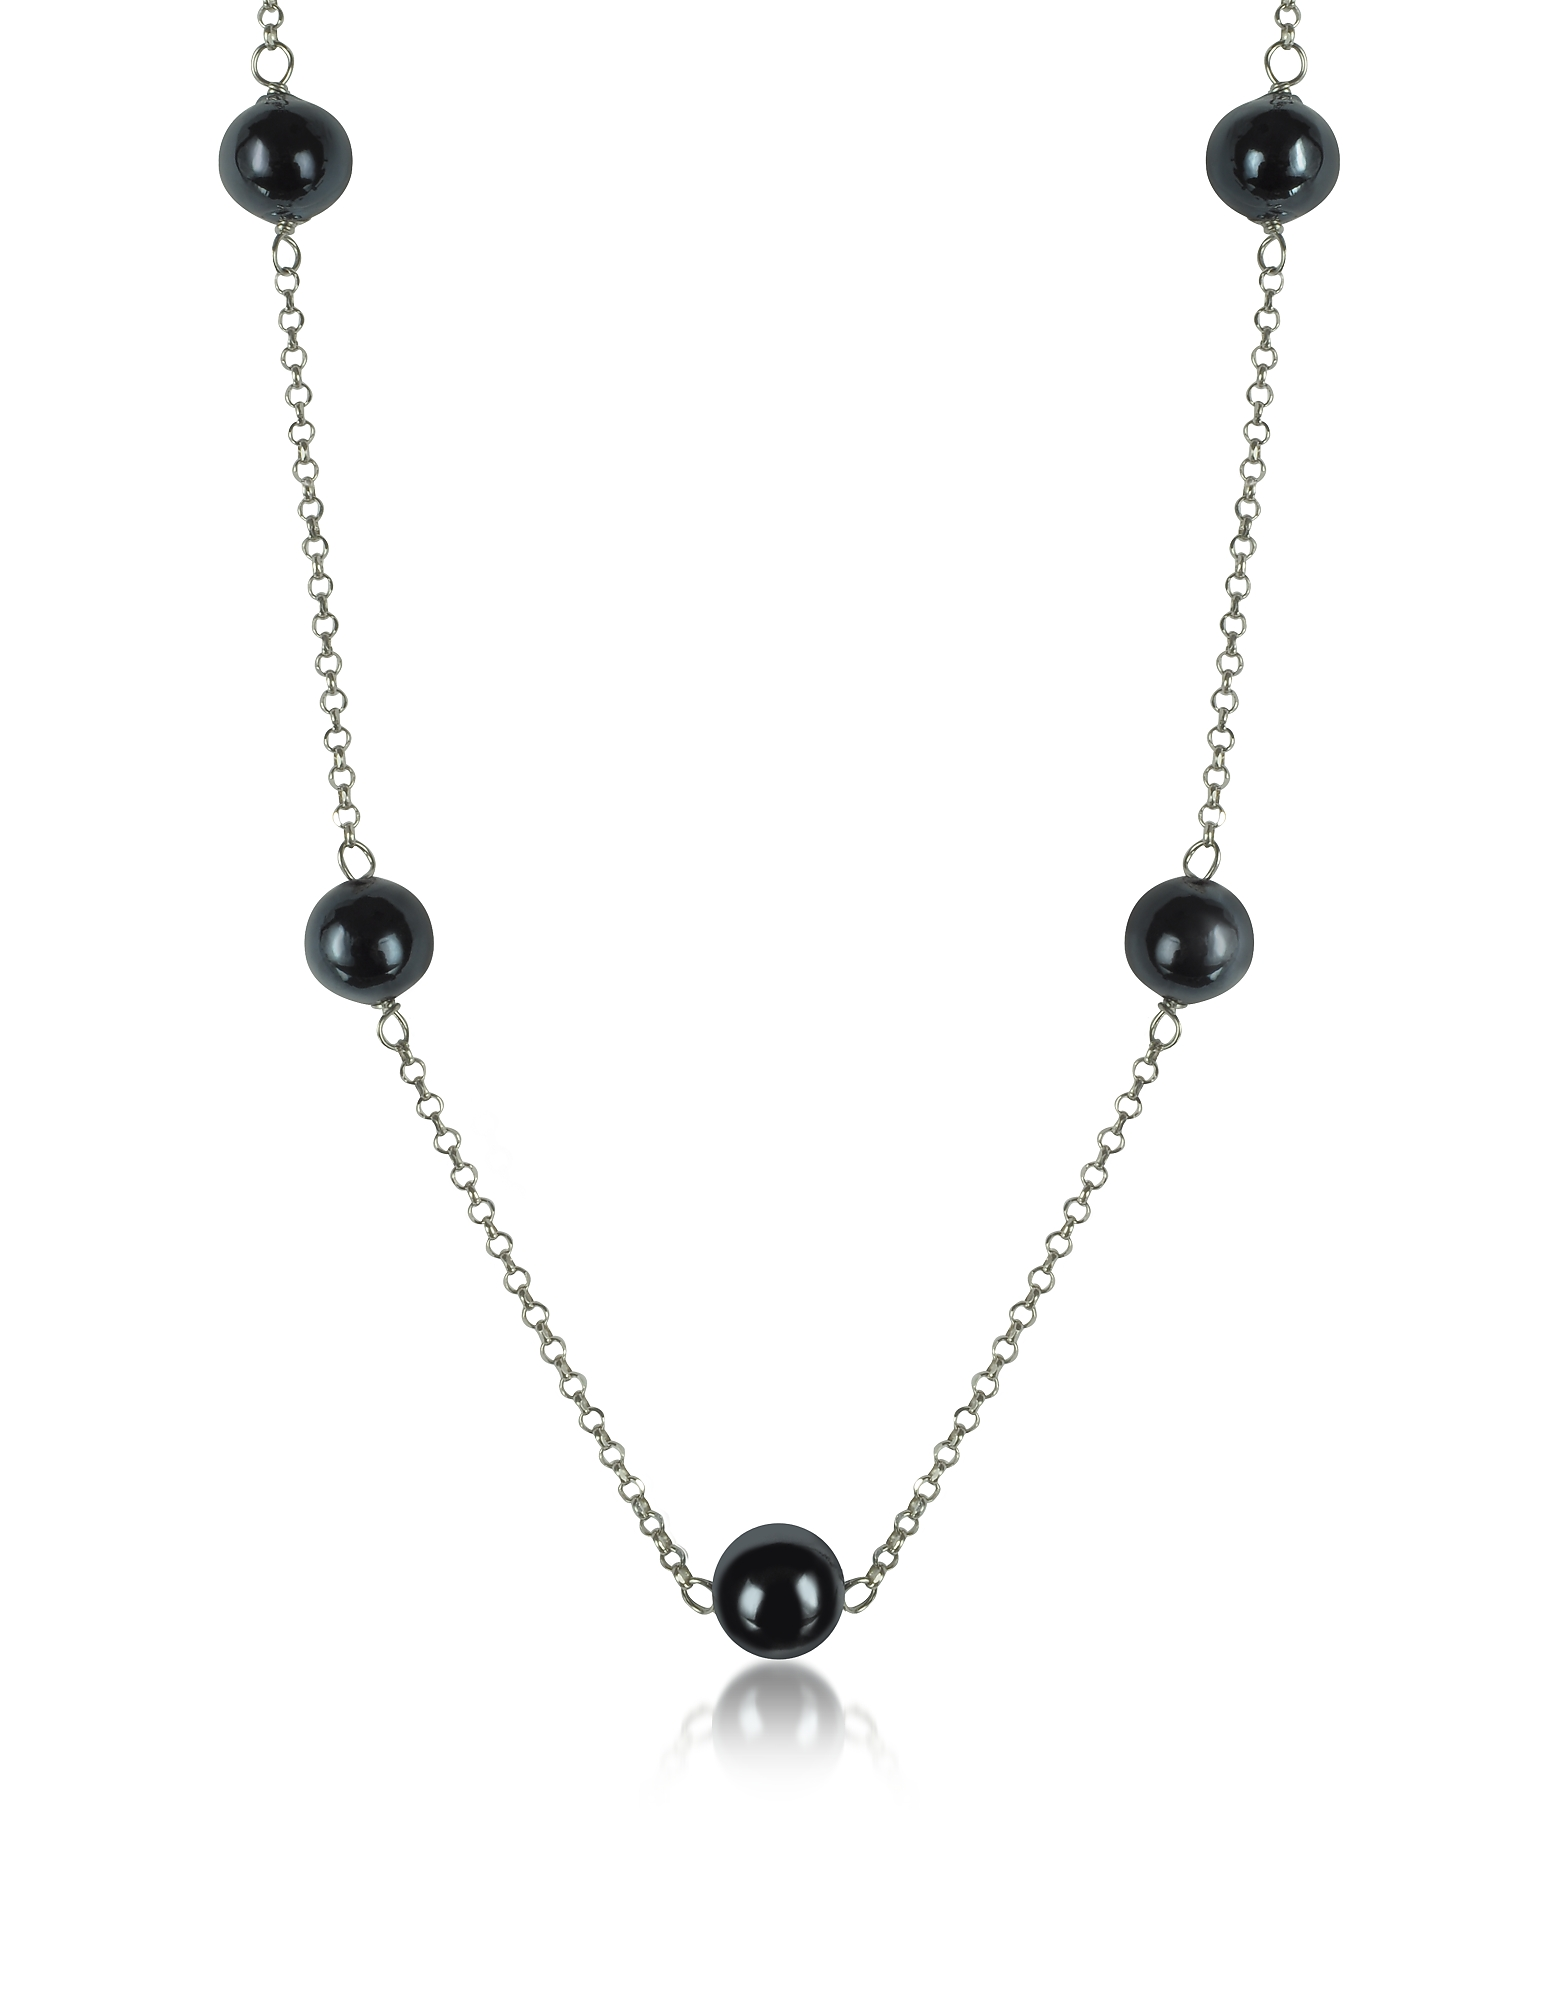 Antica Murrina Necklaces, Perleadi Black Murano Glass Beads Necklace